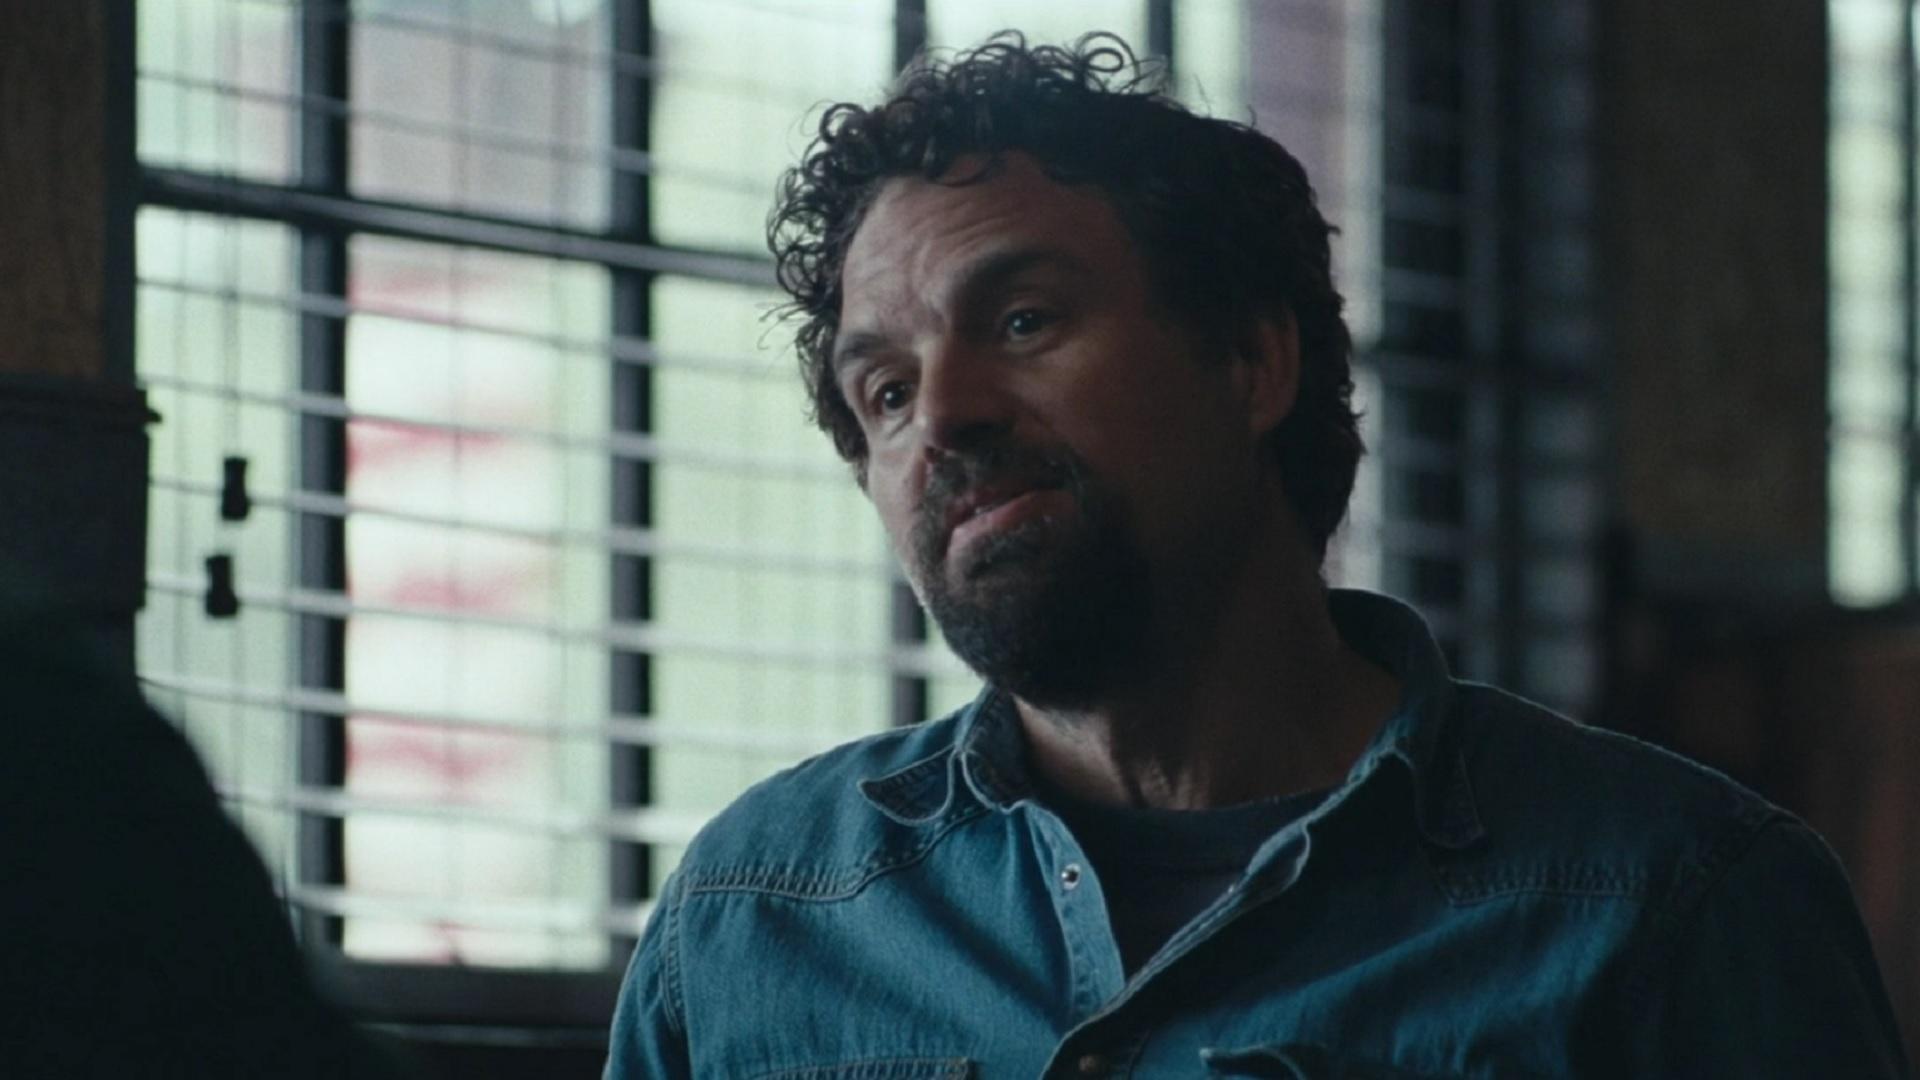 SAG Awards 2021 I Know This Much is True Mark Ruffalo